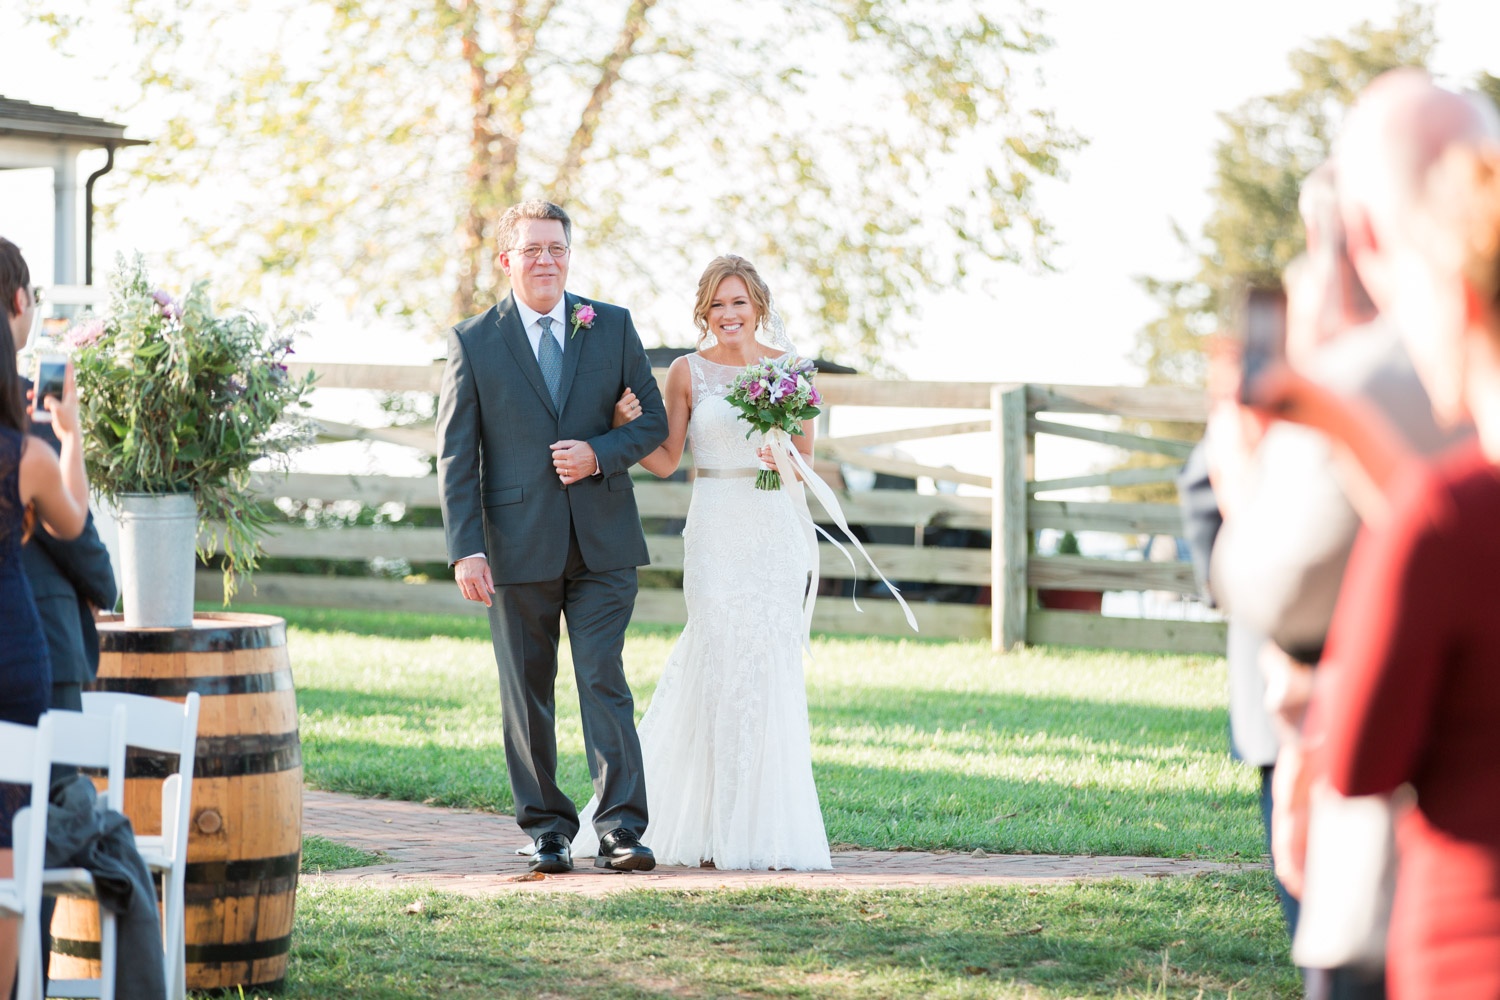 Bride and father walking down the aisle at her wedding ceremony at Walker's Overlook under a large tree, garden wedding, Cavin Elizabeth Photography